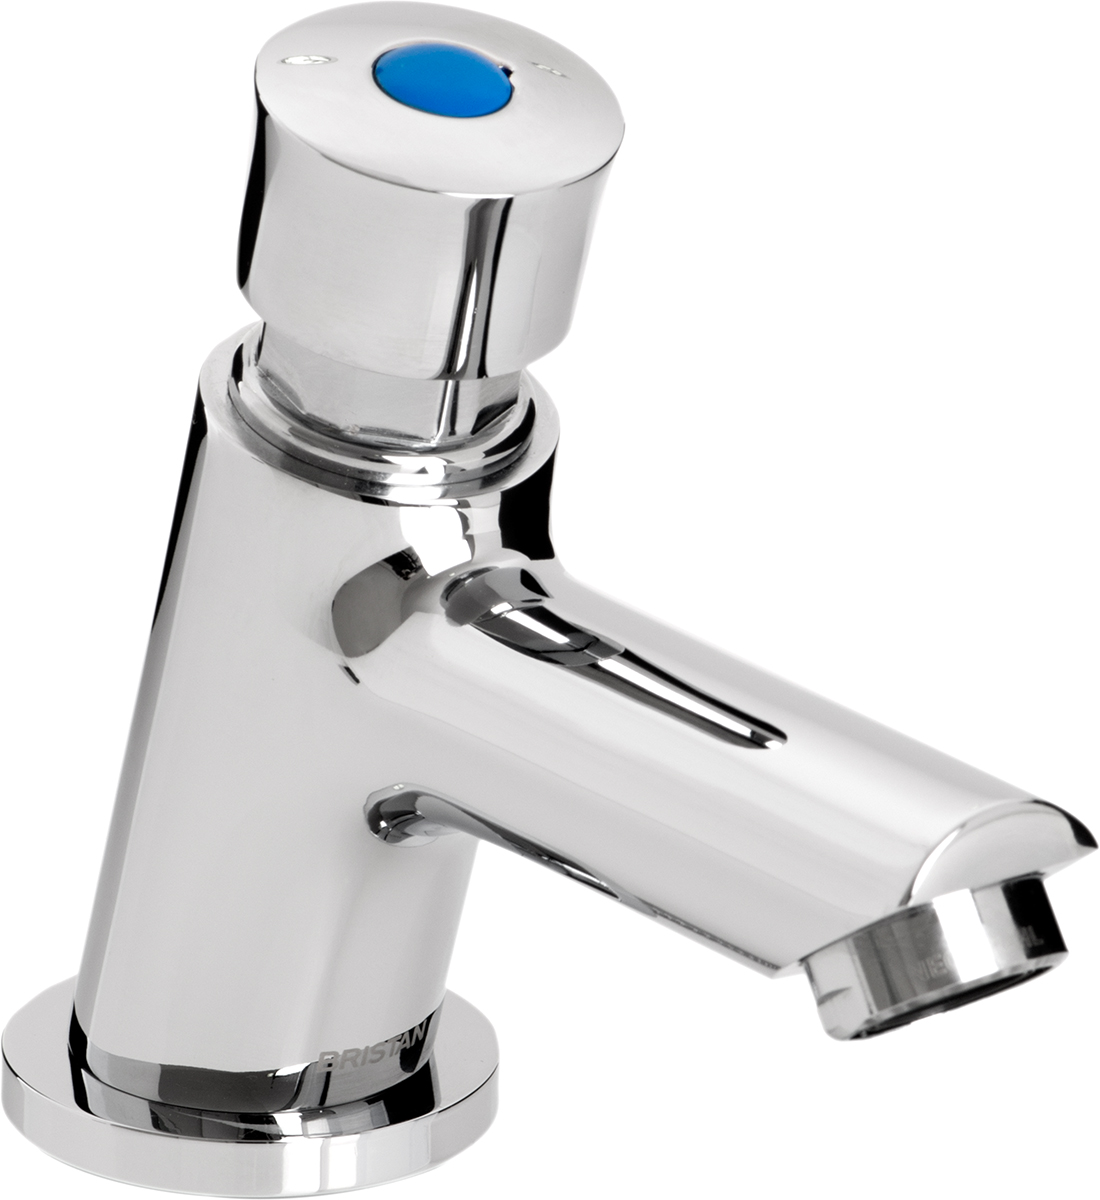 Soft Touch Luxury Basin Tap (with flow regulator)